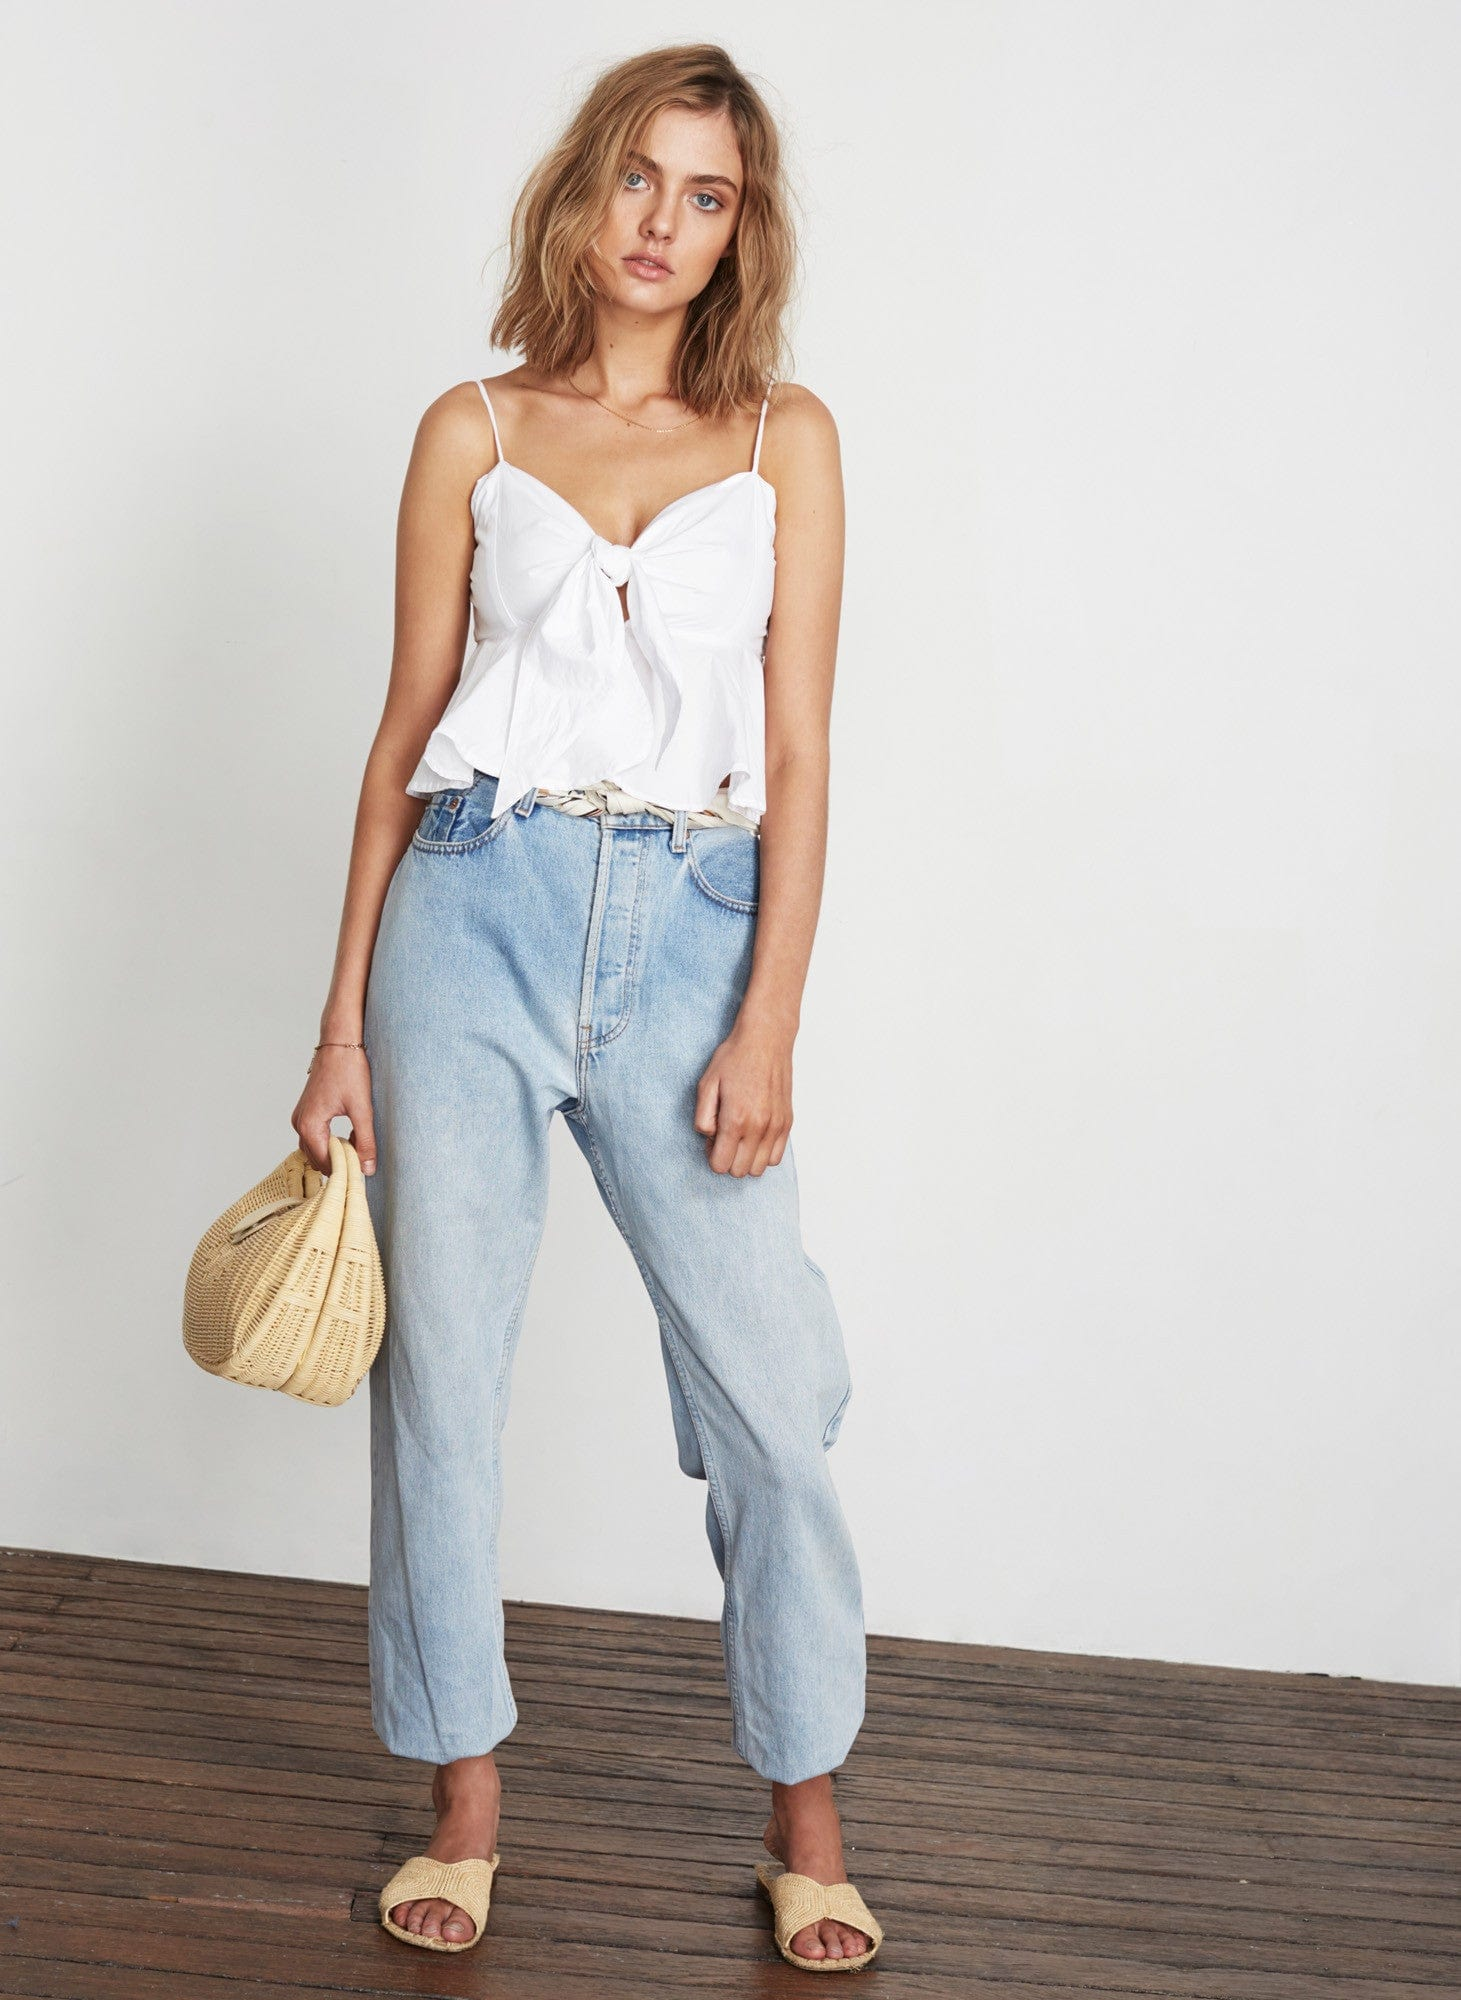 PLAIN WHITE - PINA COLADA TOP